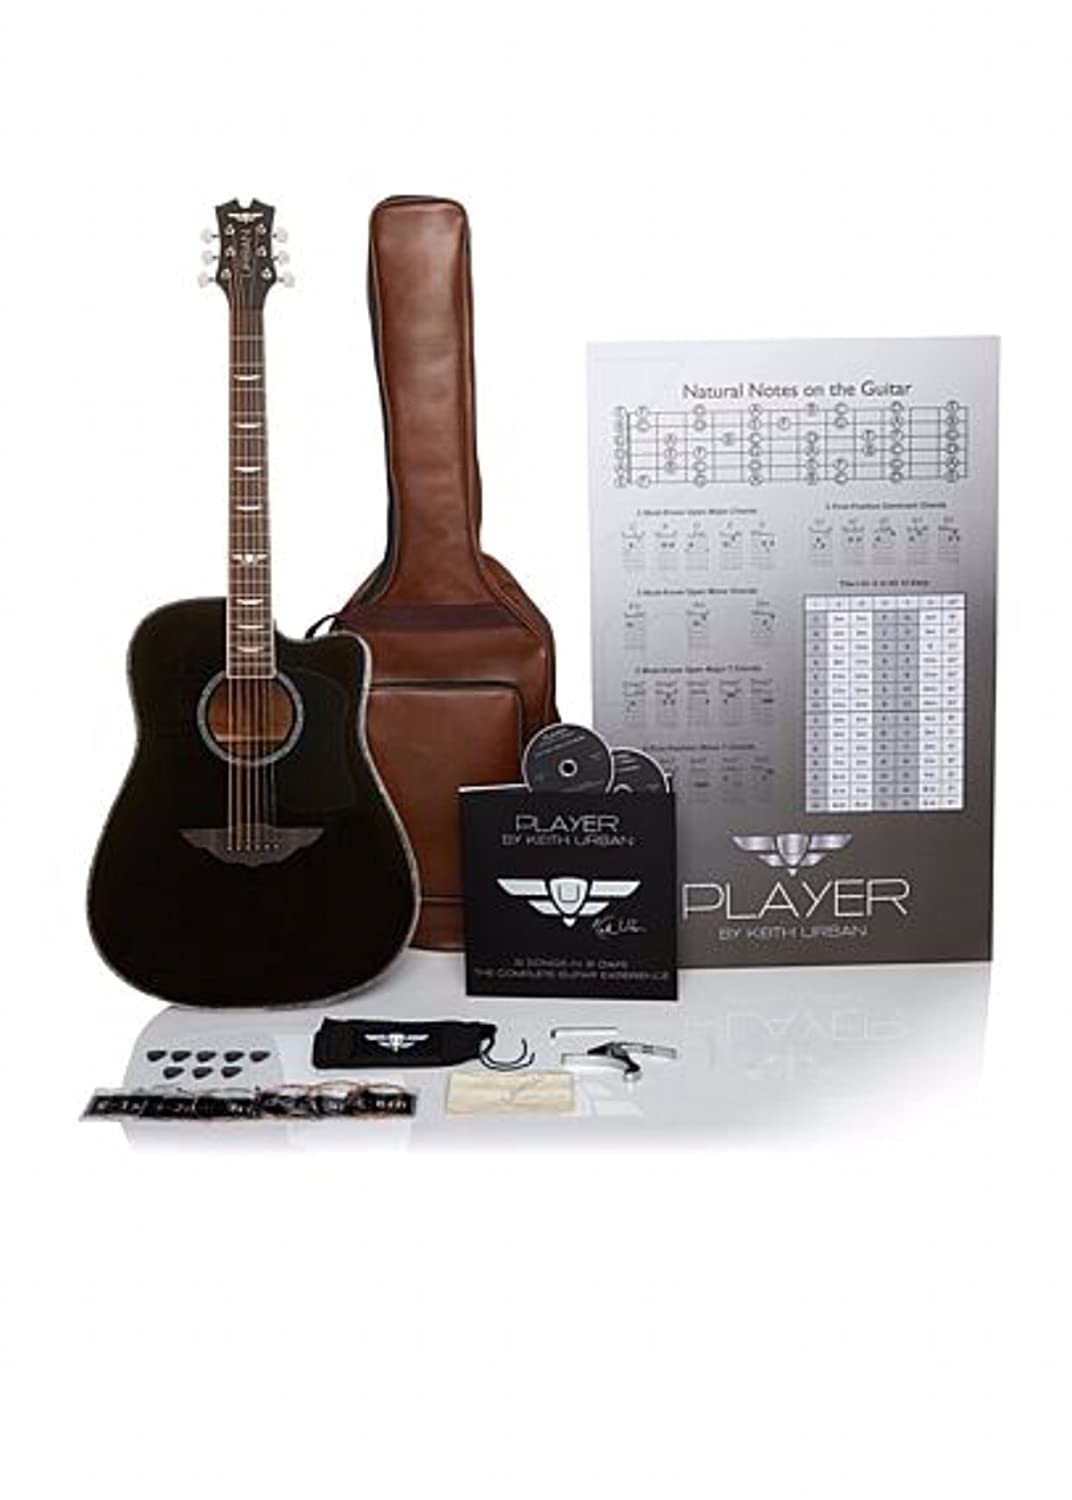 Keith Urban 50-piece 'PLAYER' Acoustic Guitar and 30-Lesson Package - Rich Black The Urban Guitar Collection